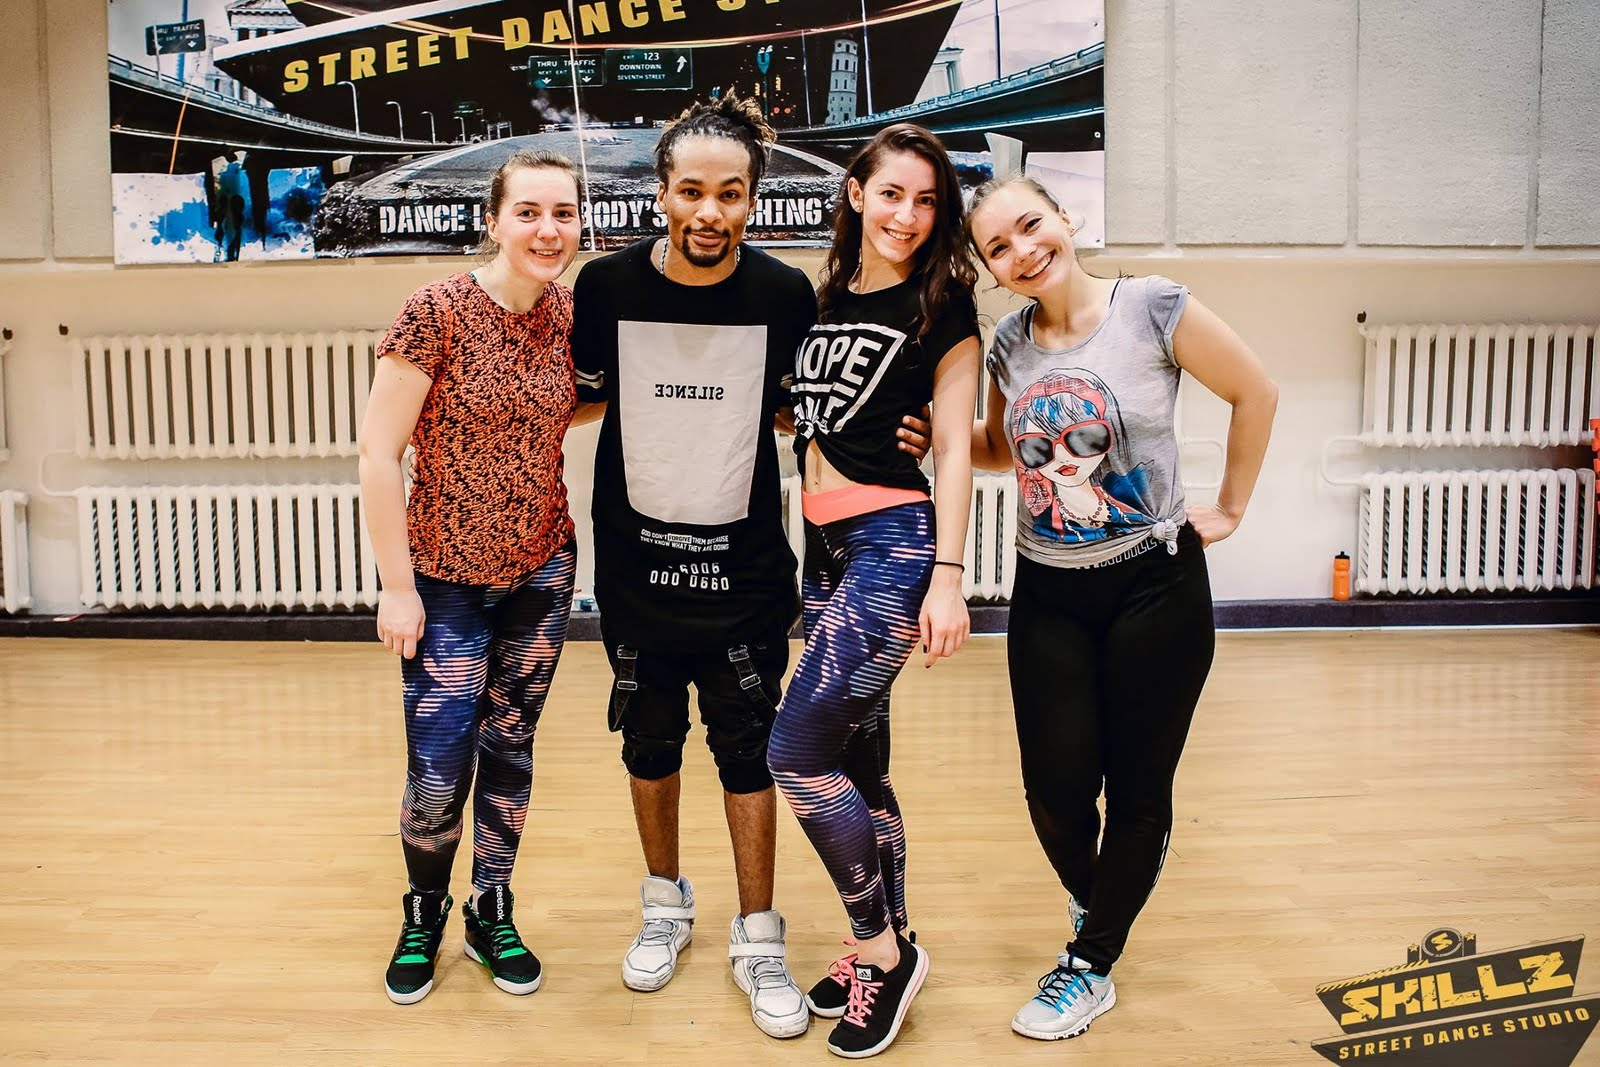 Dancehall workshop with Jiggy (France) - 63.jpg